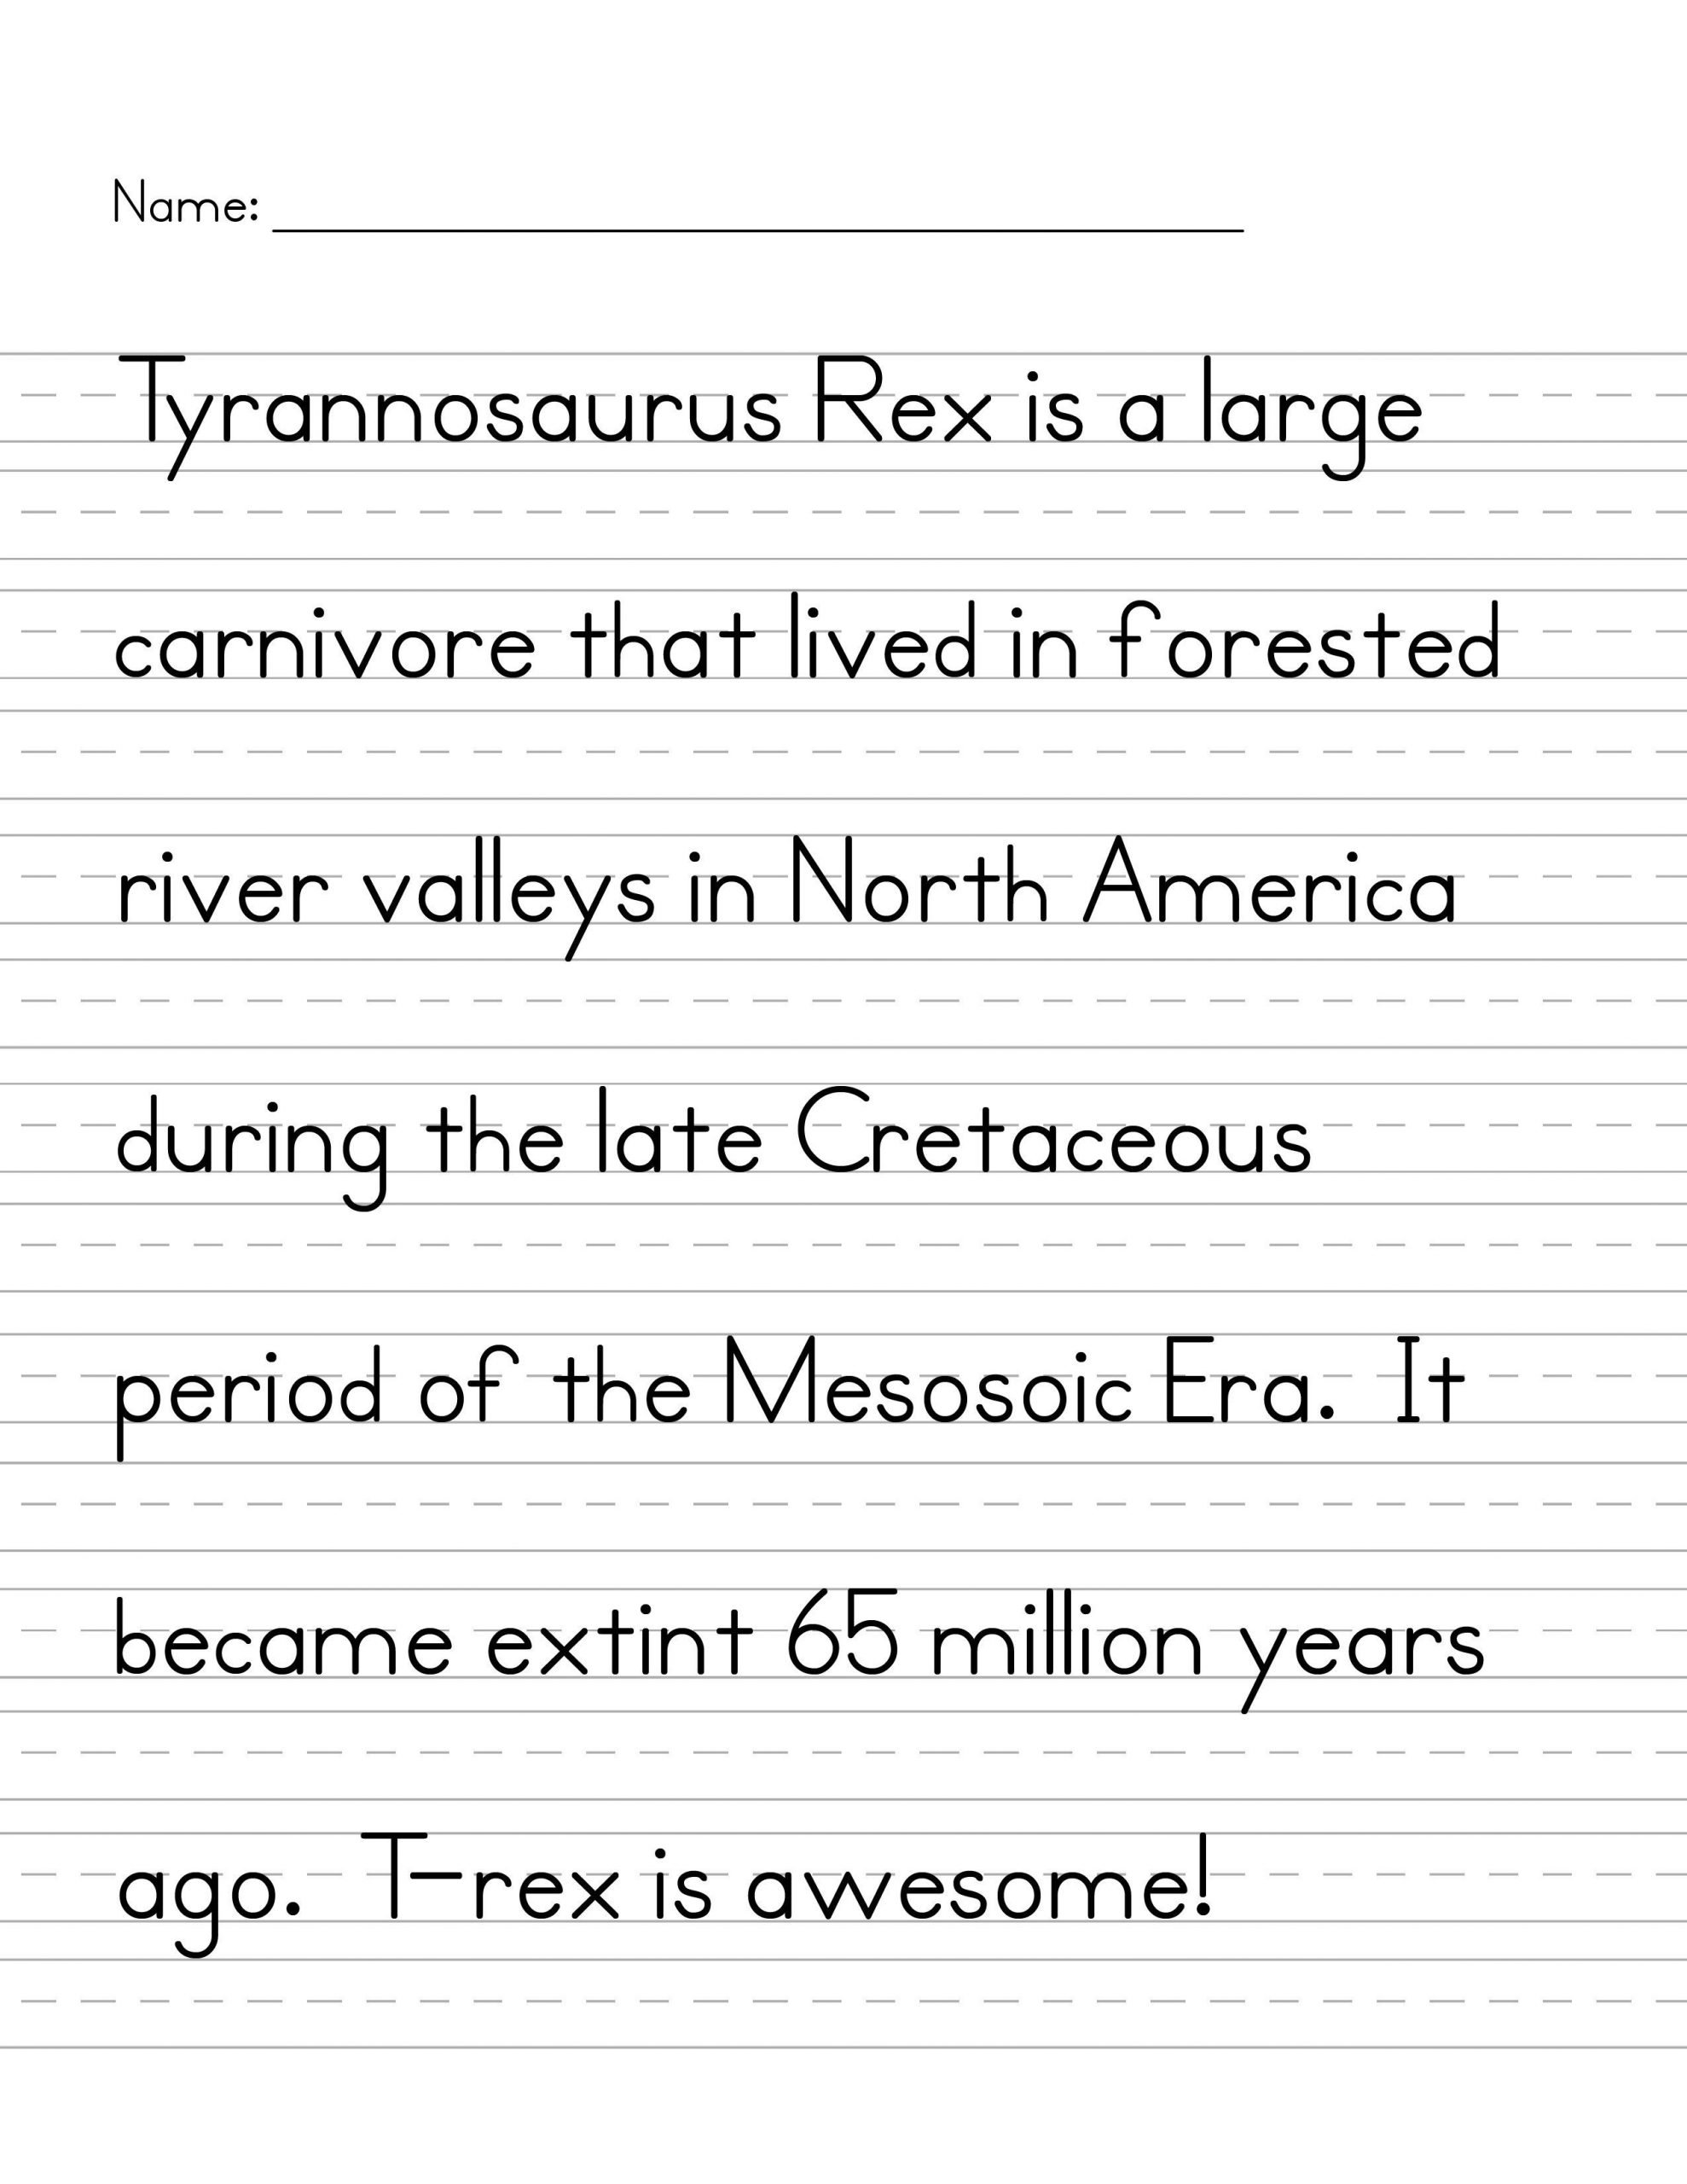 Handwriting Analysis Worksheet Handwriting T Rex 2550—3300